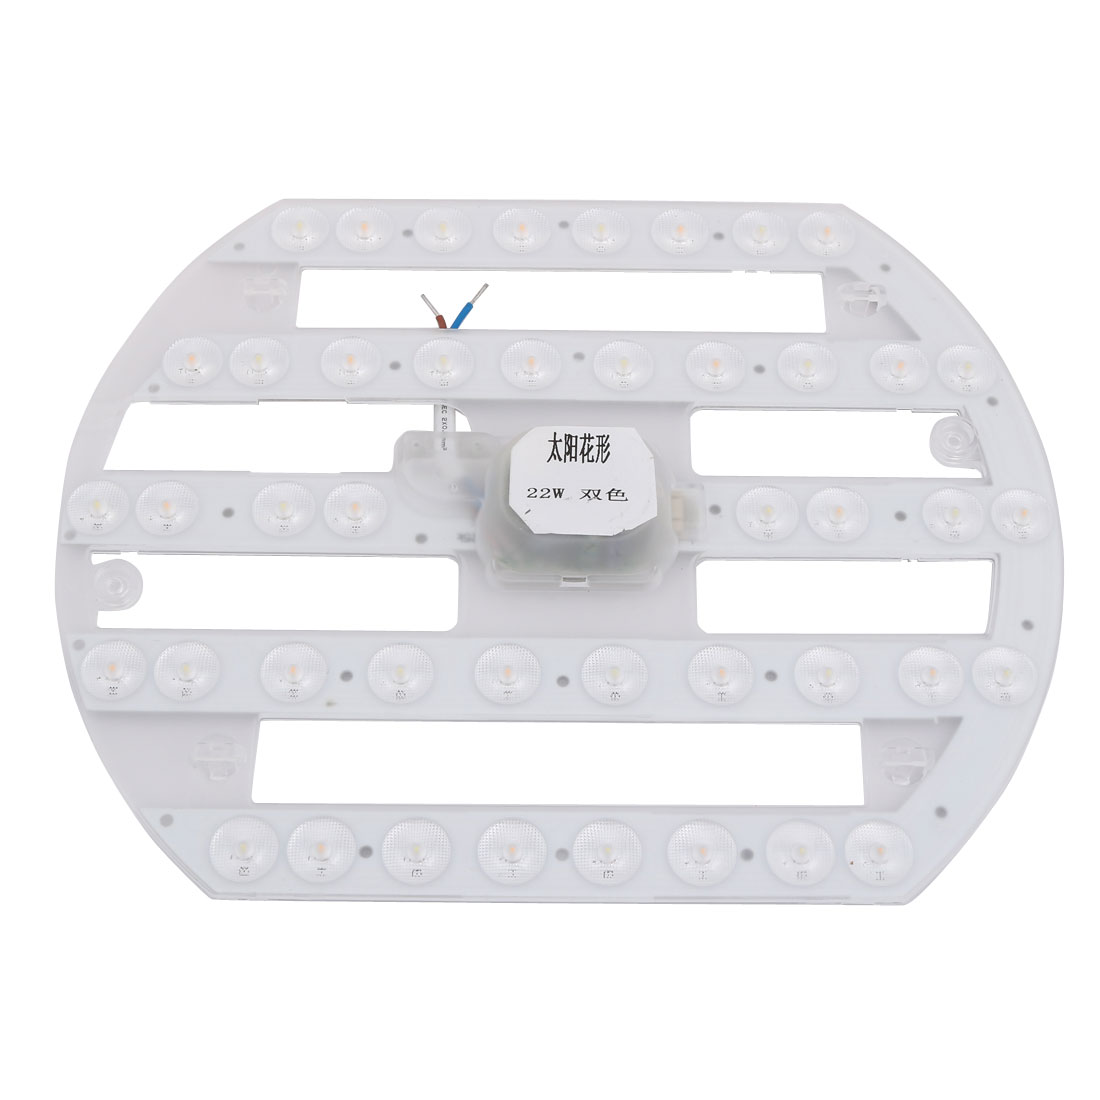 AC 185V-265V 22W LED Ceiling Optical Lens Module Light Board 44-LED 4000K